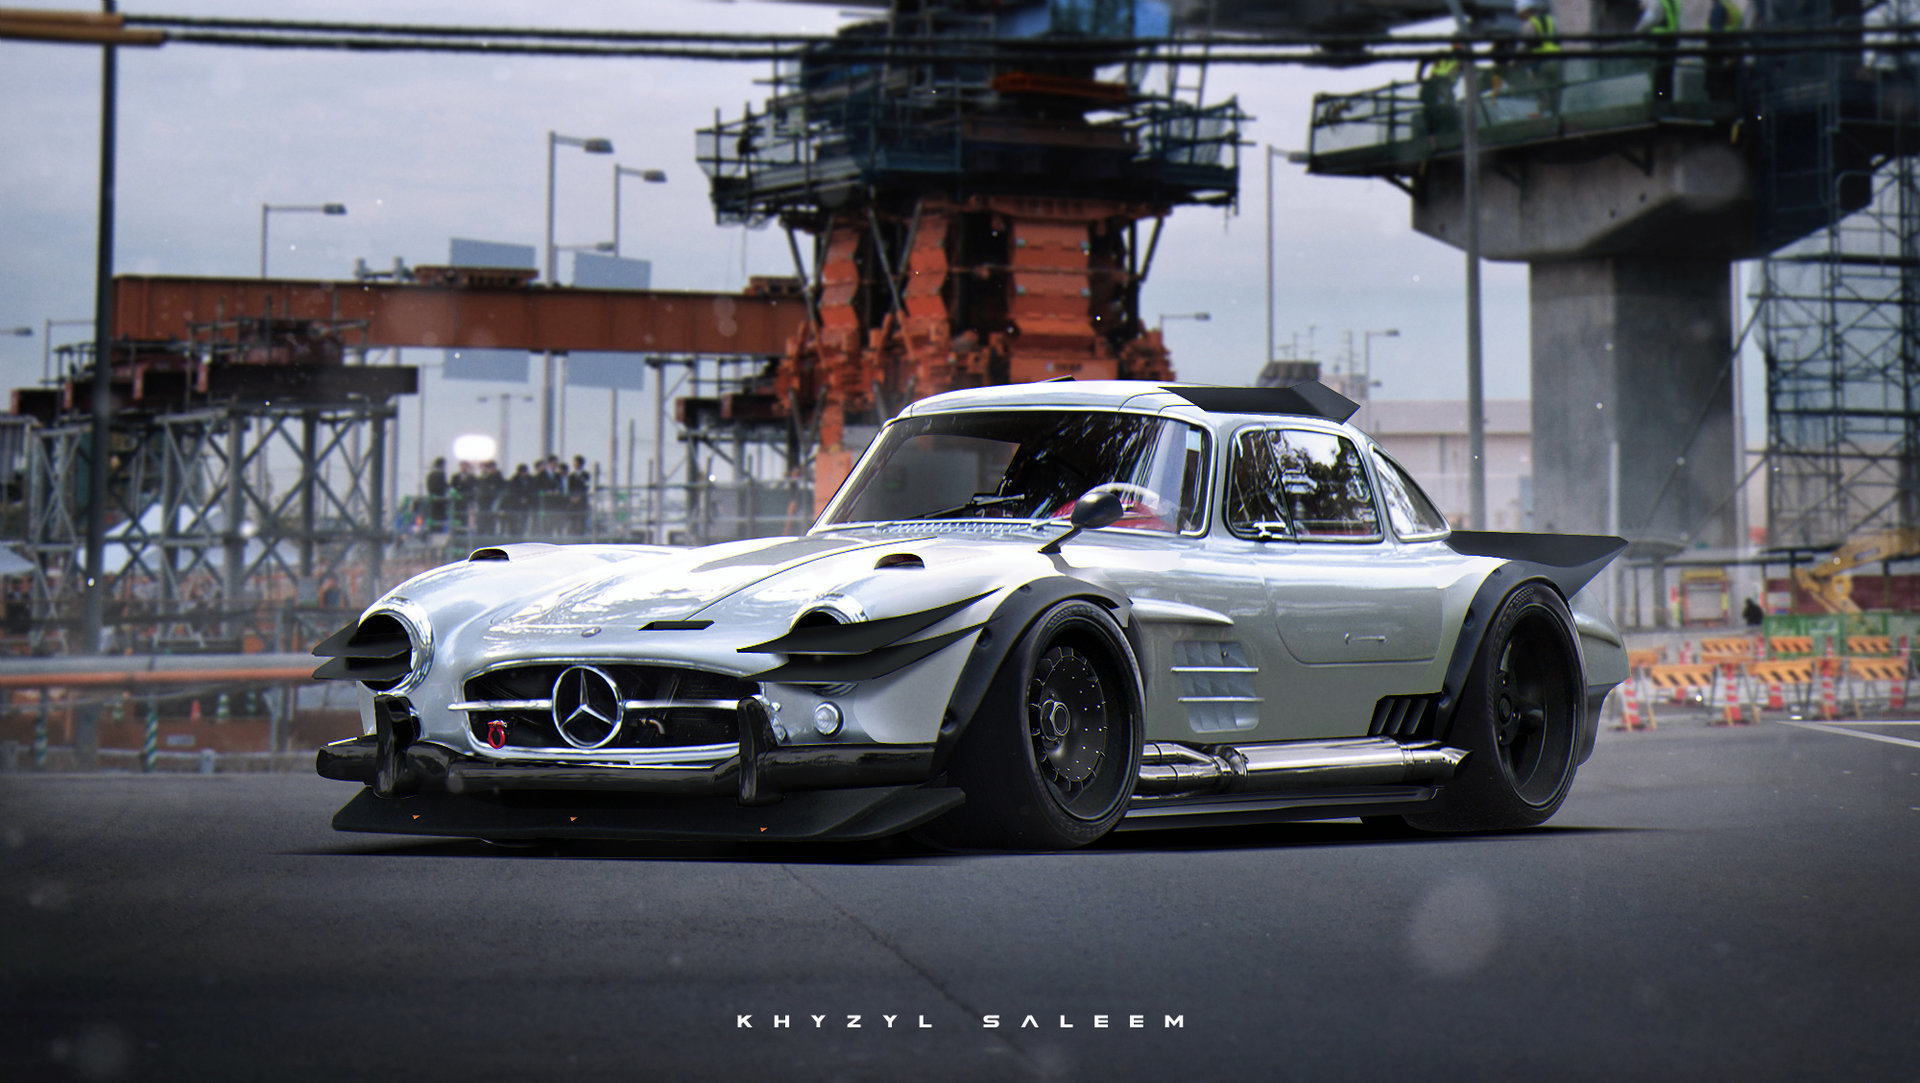 khyzyl-saleem-300sl-copy.jpg